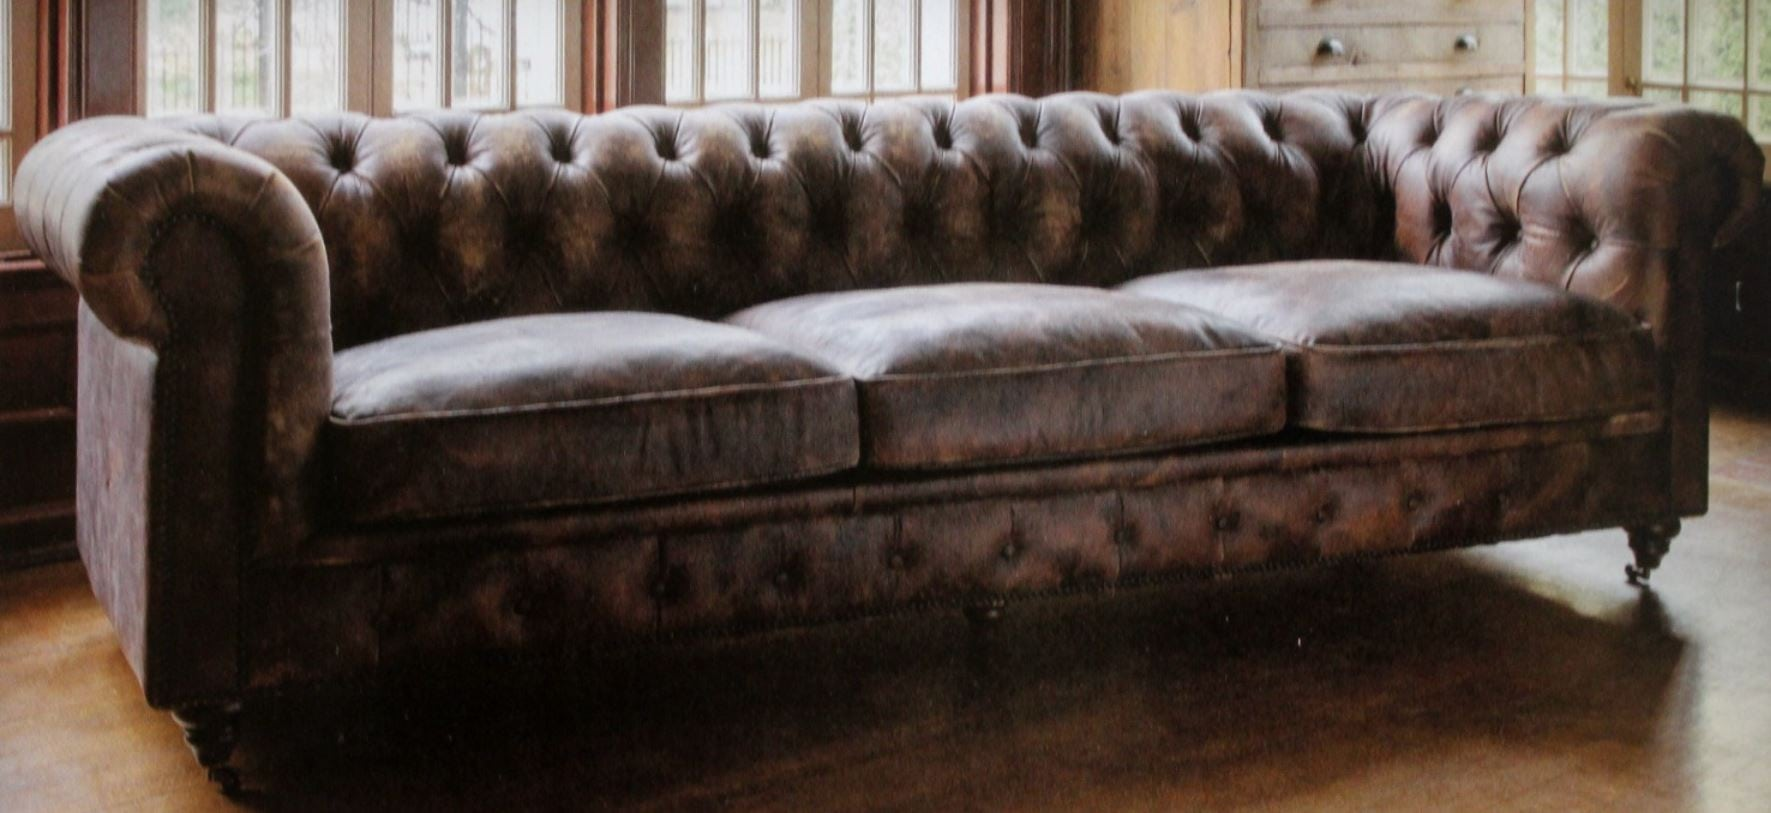 Brown Real Leather Couch Extra Long Aged Leather Couch With Restoration Style Brass Hardware Feet 96 Inch